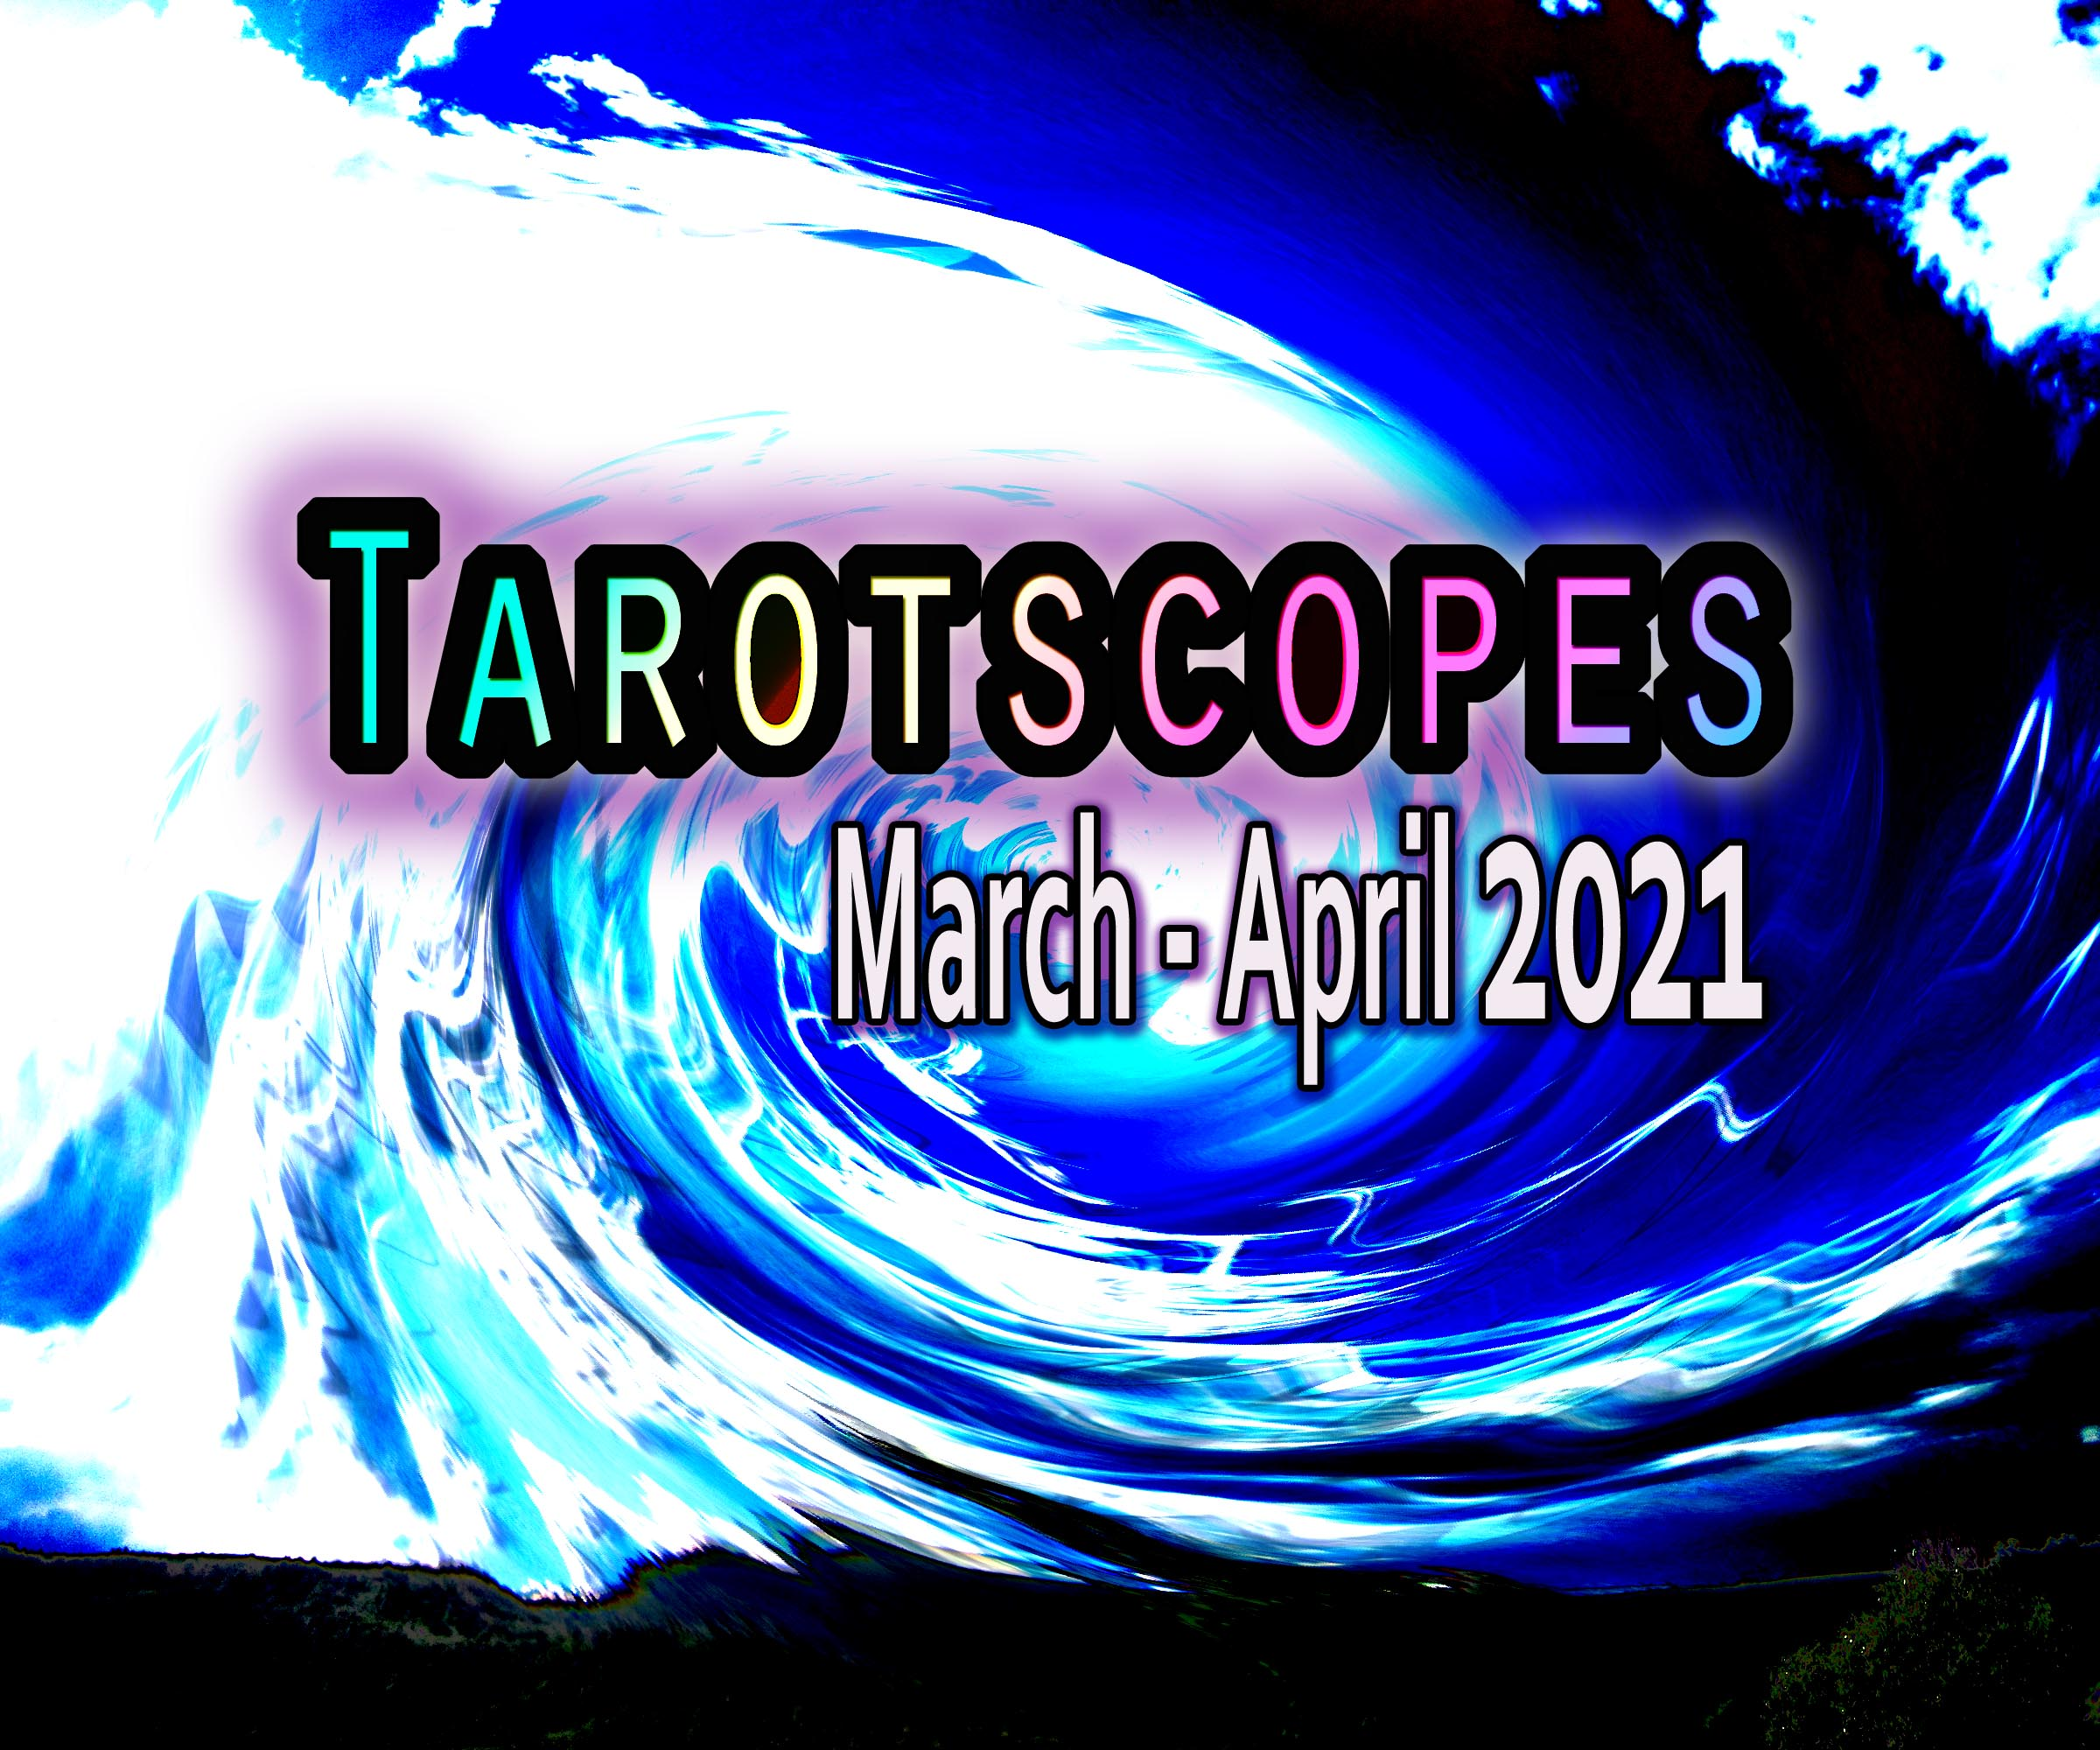 Tarotscopes March to April 2021